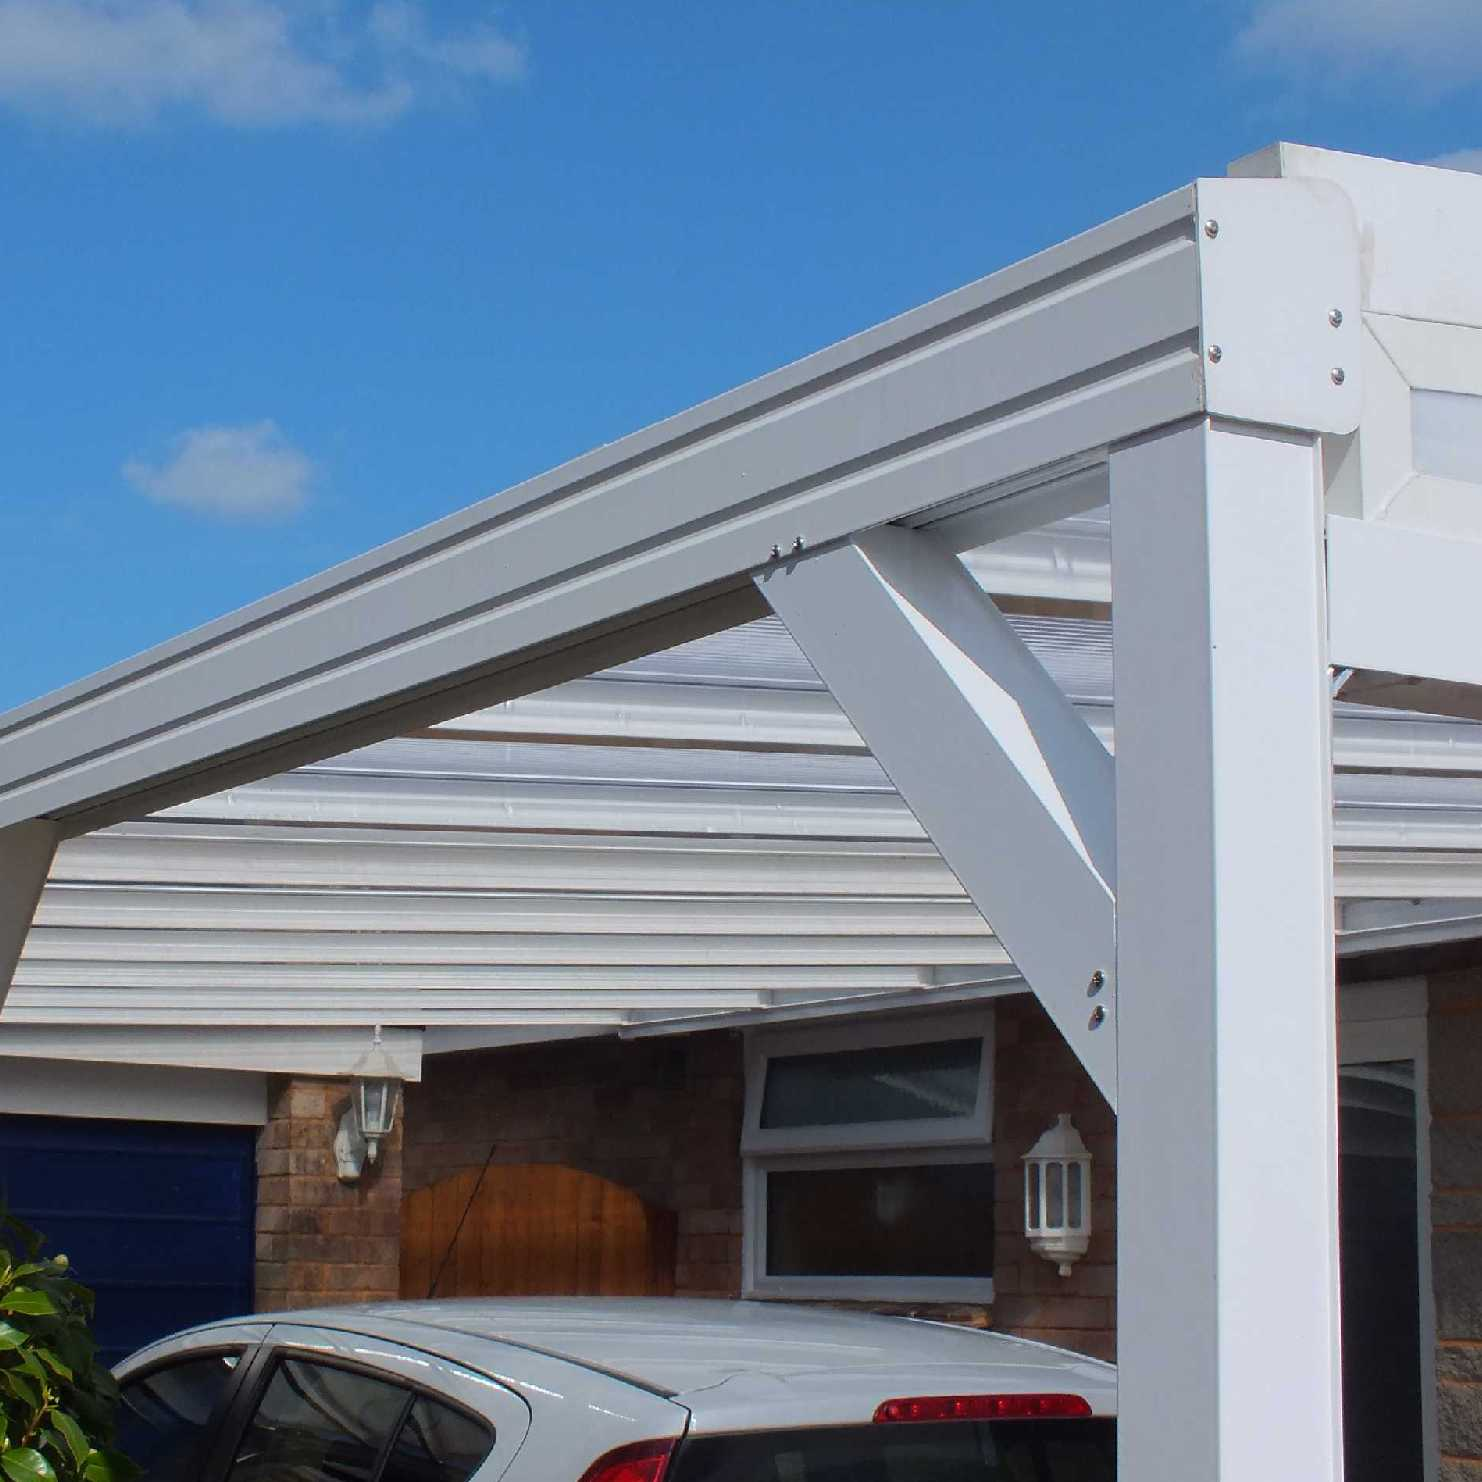 Great deals on Omega Smart Lean-To Canopy with 16mm Polycarbonate Glazing - 9.5m (W) x 2.0m (P), (5) Supporting Posts